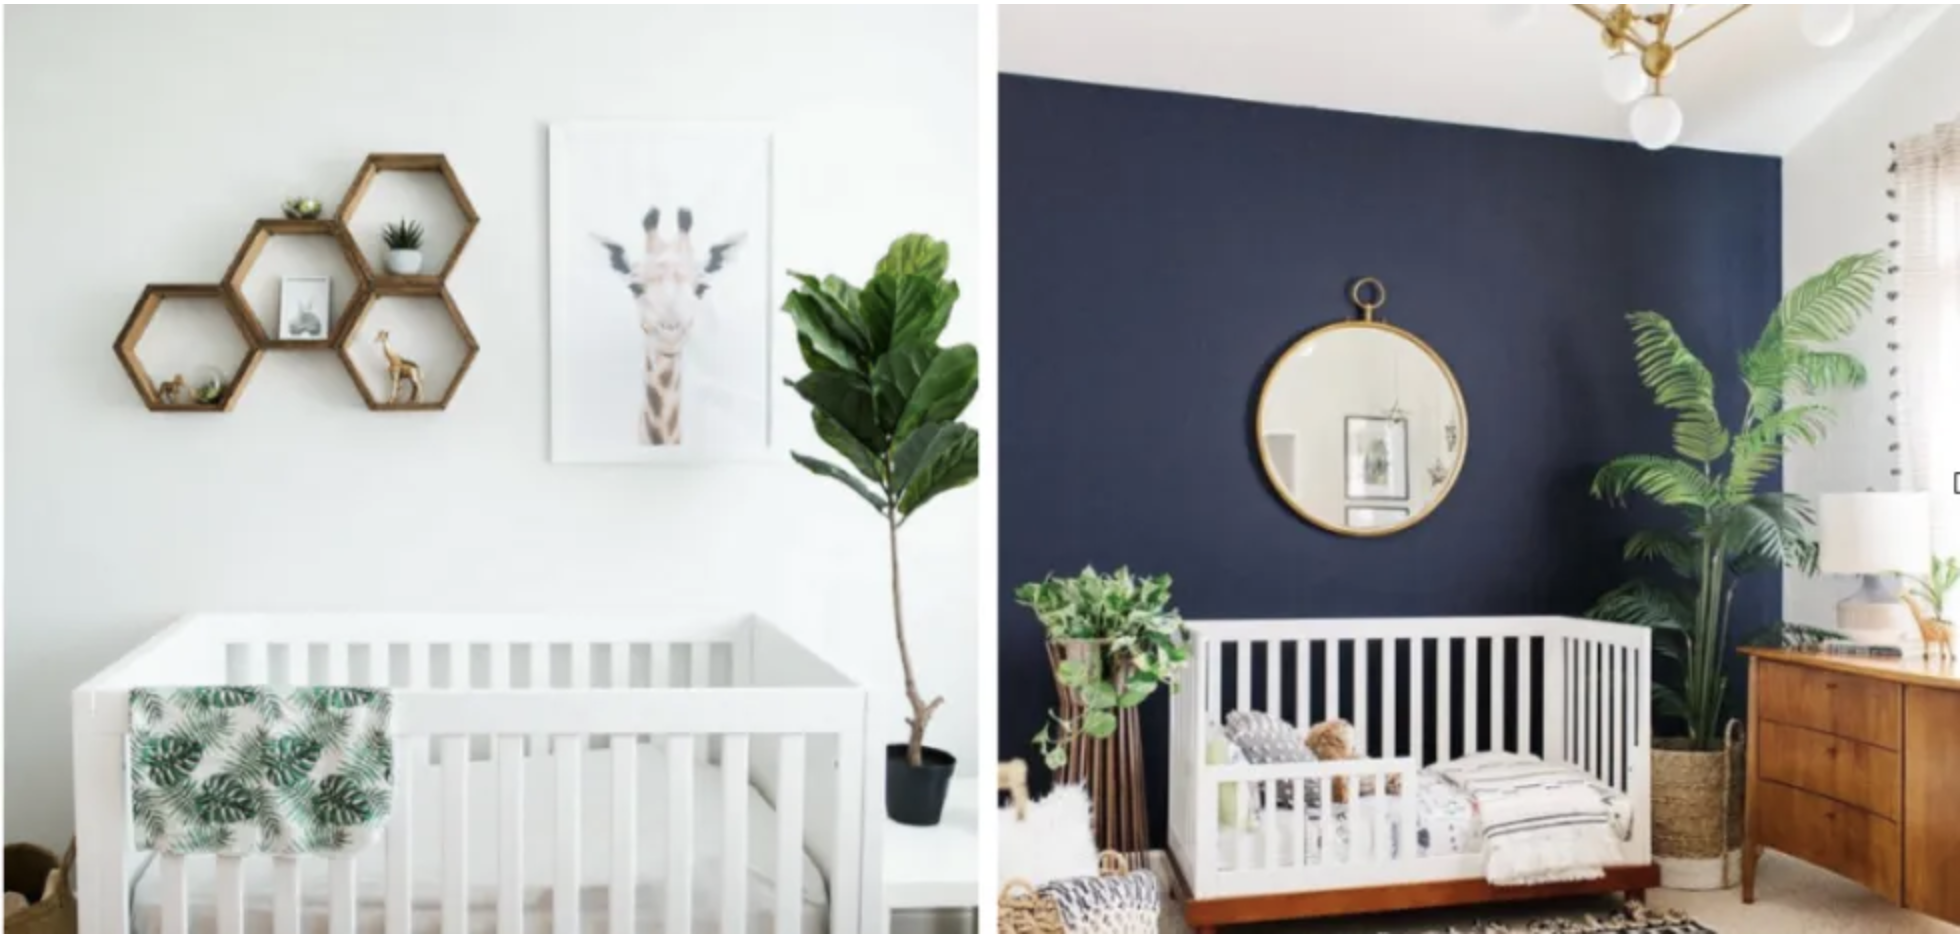 Children's rooms soften with plants